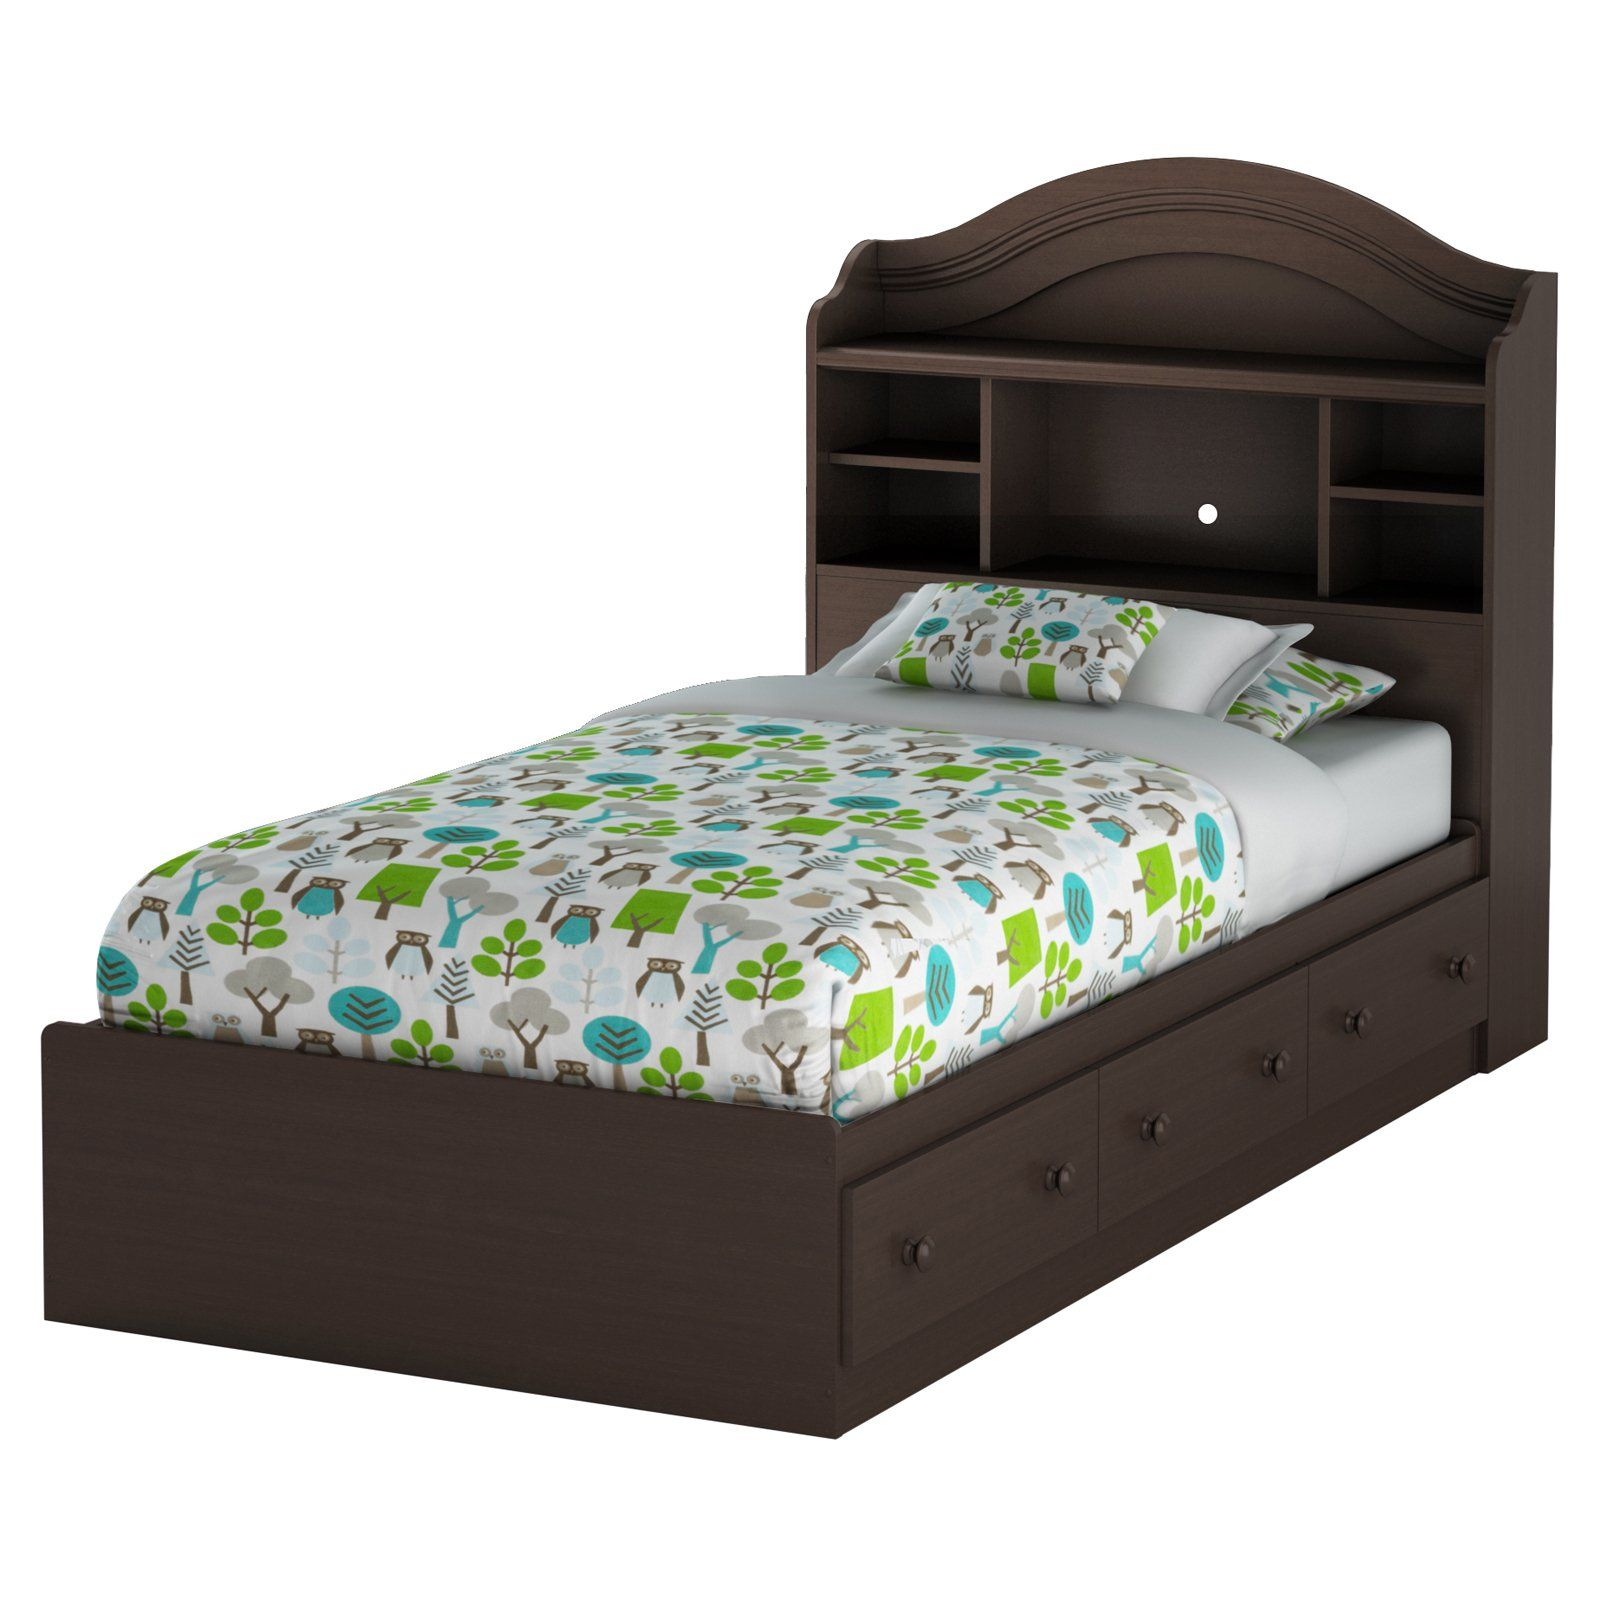 Gothic Craft Twin Storage Bed with 6 Drawers